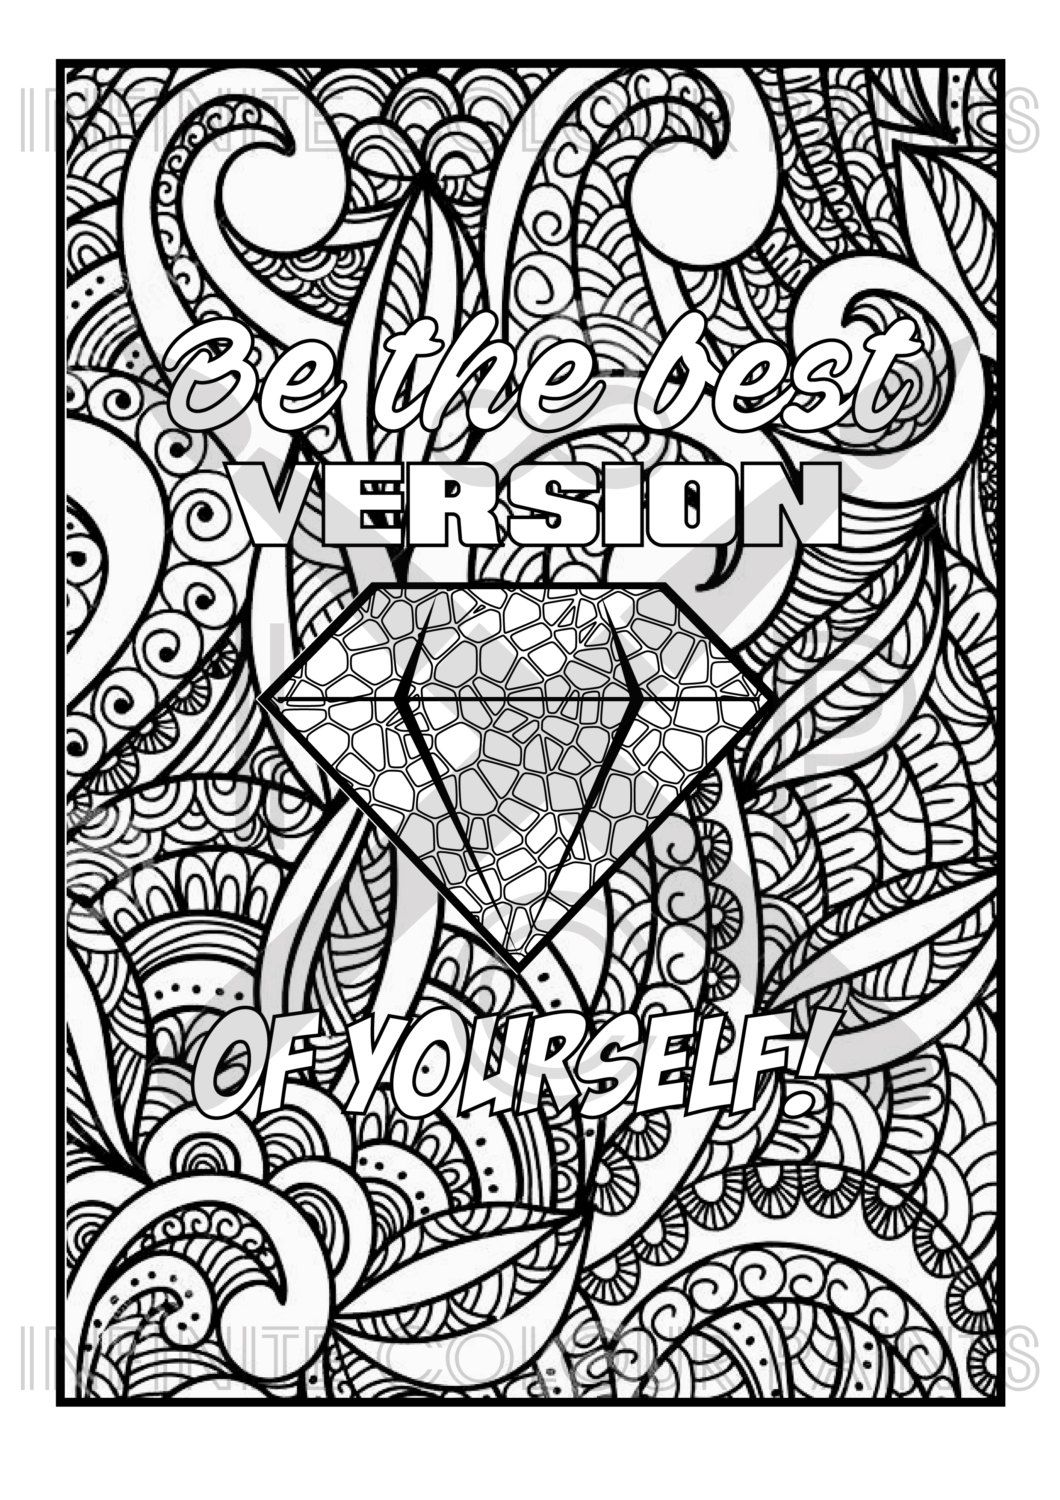 coloring timeless creations timeless creations creative quotes coloring page love creations coloring timeless